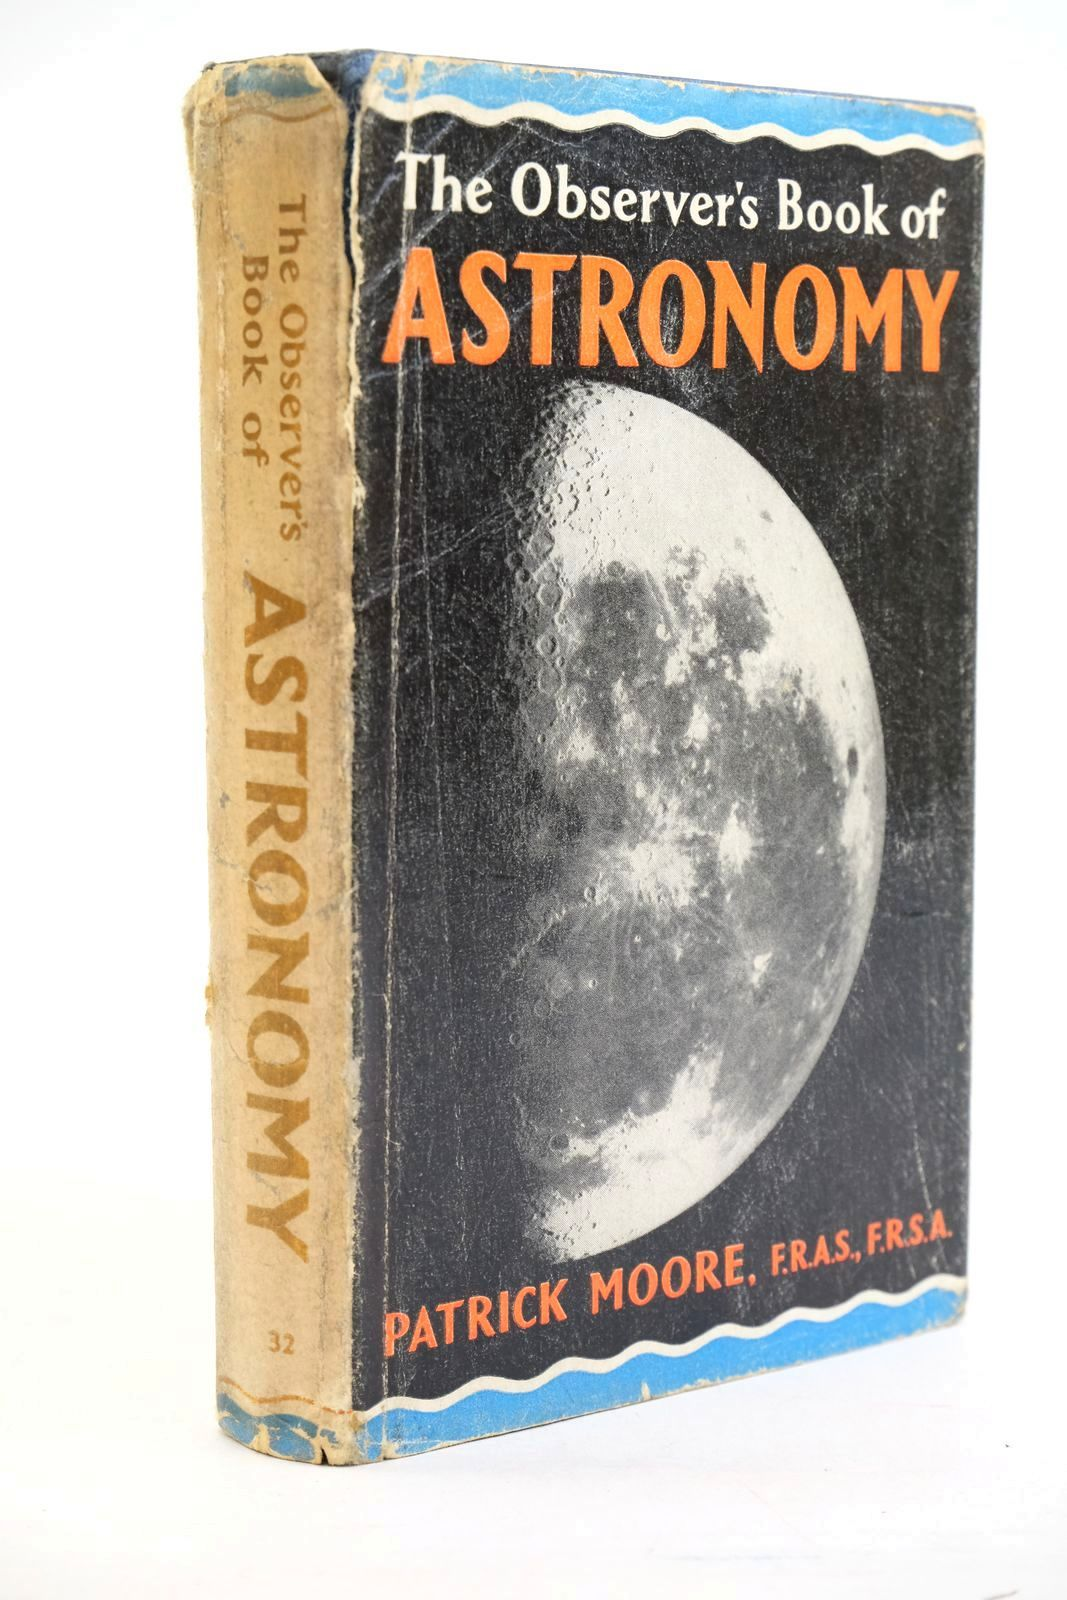 Photo of THE OBSERVER'S BOOK OF ASTRONOMY written by Moore, Patrick illustrated by Ball, L.F. published by Frederick Warne & Co Ltd. (STOCK CODE: 1320973)  for sale by Stella & Rose's Books